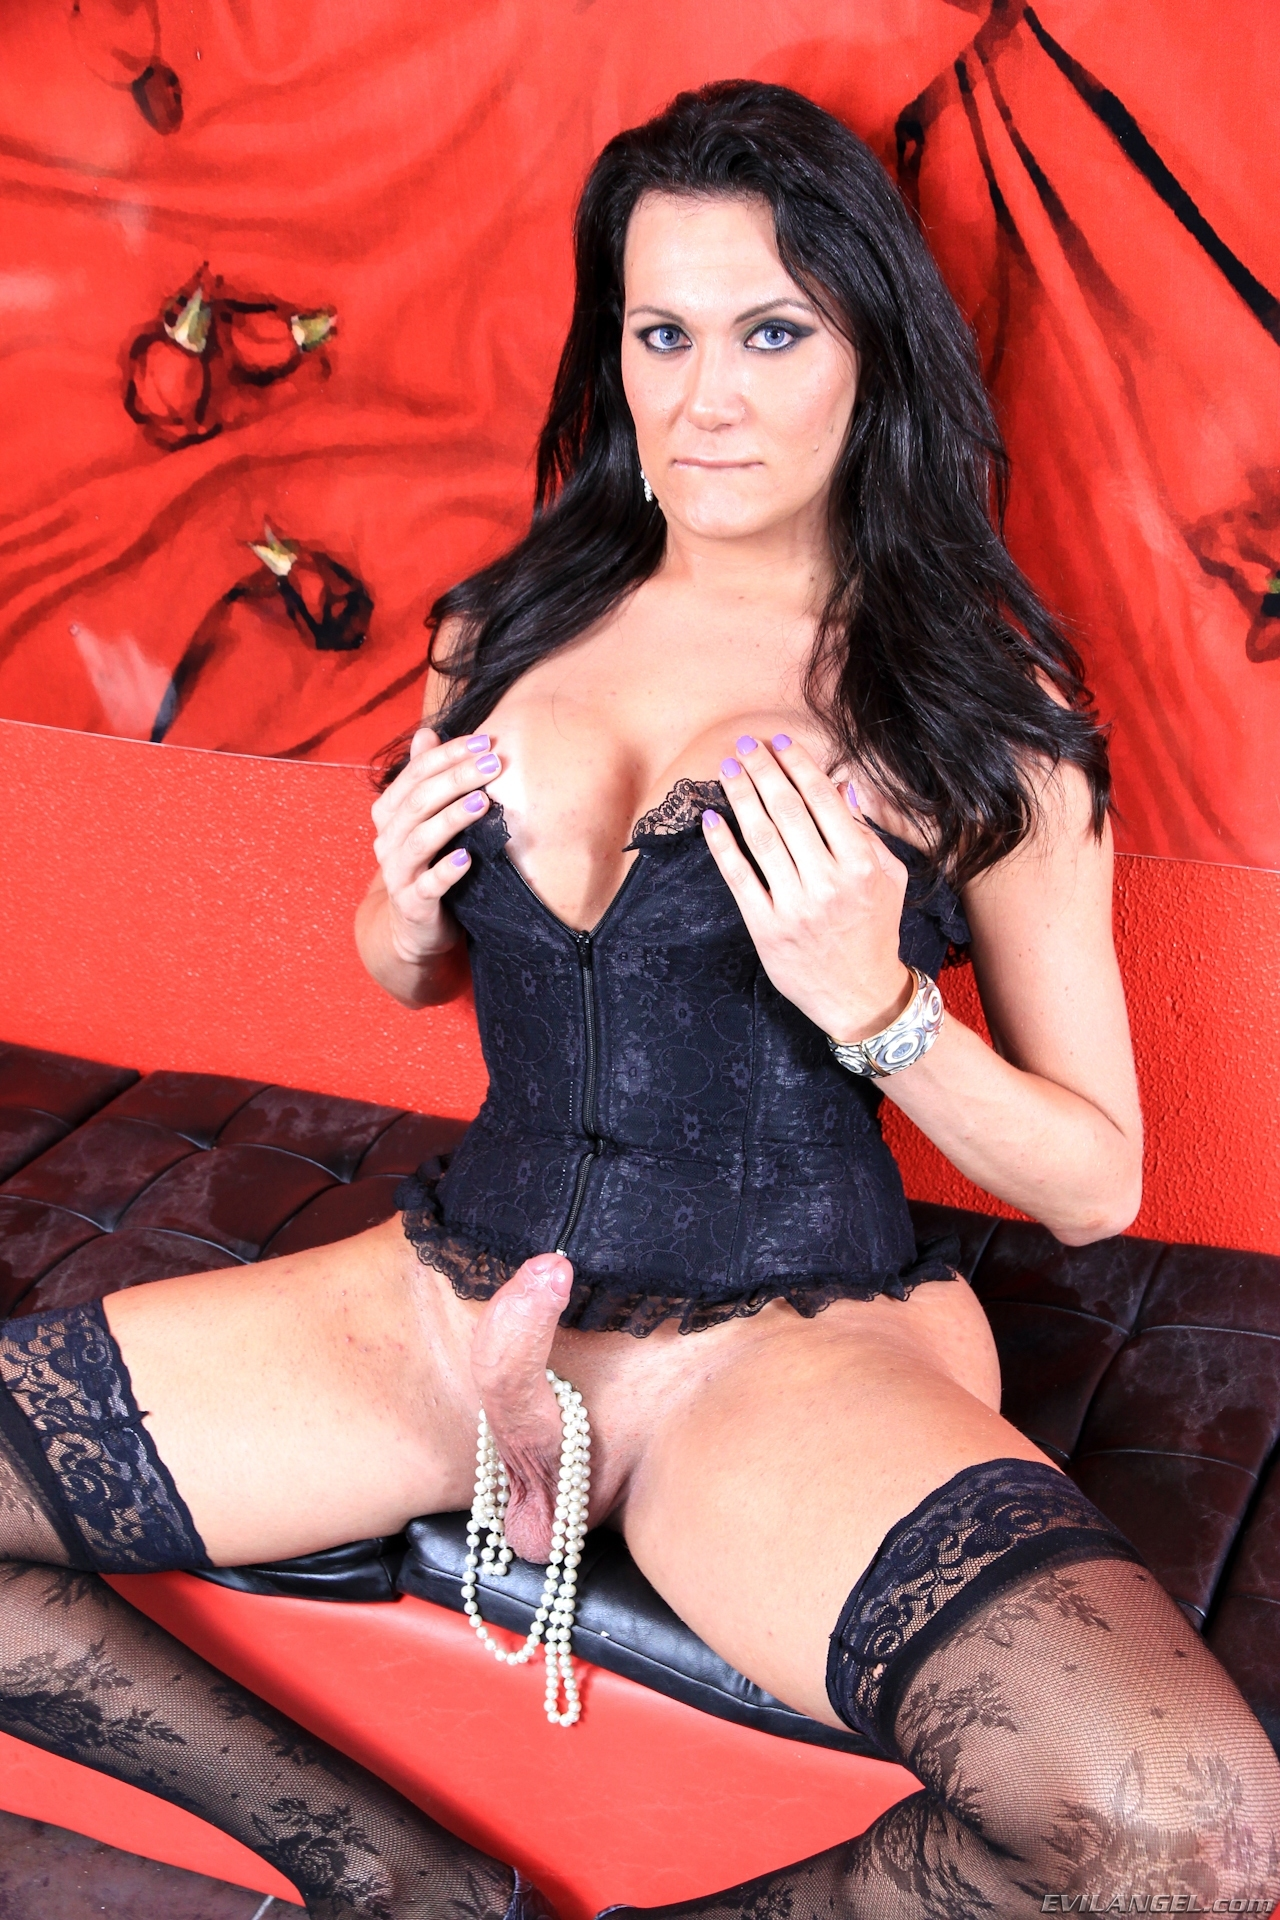 bia gaucha will choke her dick with some pearls